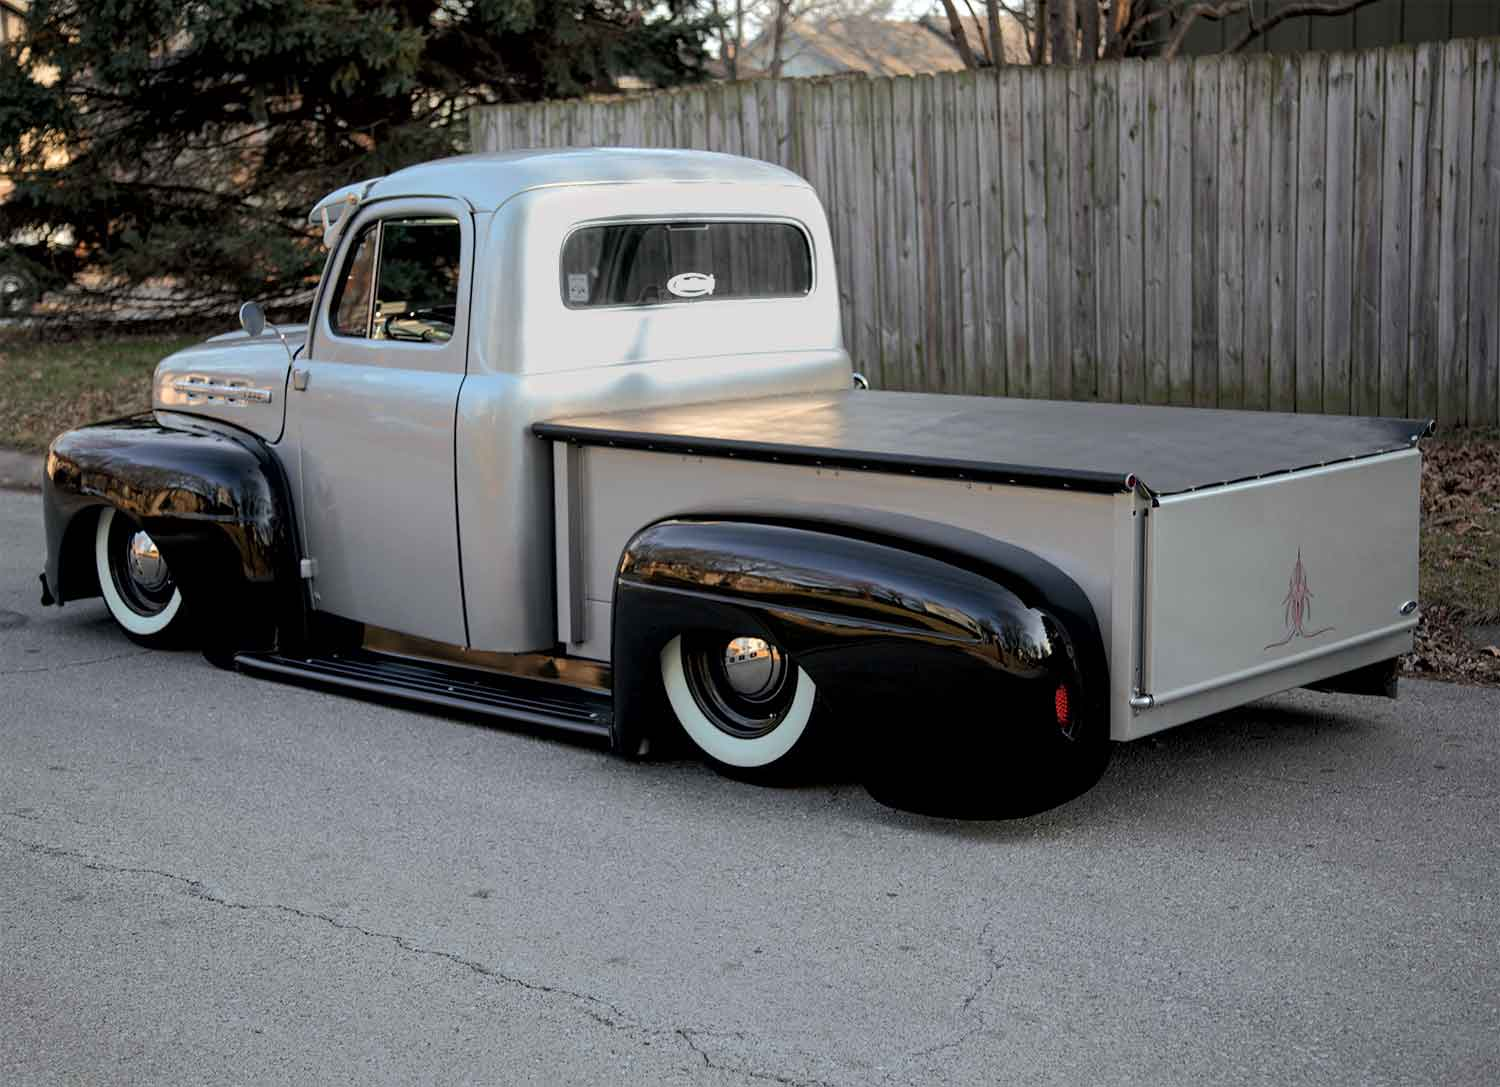 1951 Ford F 1 Matt Shotton Lmc Truck Life F100 Custom Form My Grandpa Father For 800 Slowly Been Restoring It Many Years 302h0 Engine With The C6 And A 9 Inch Rear Axle Air Ride Suspension